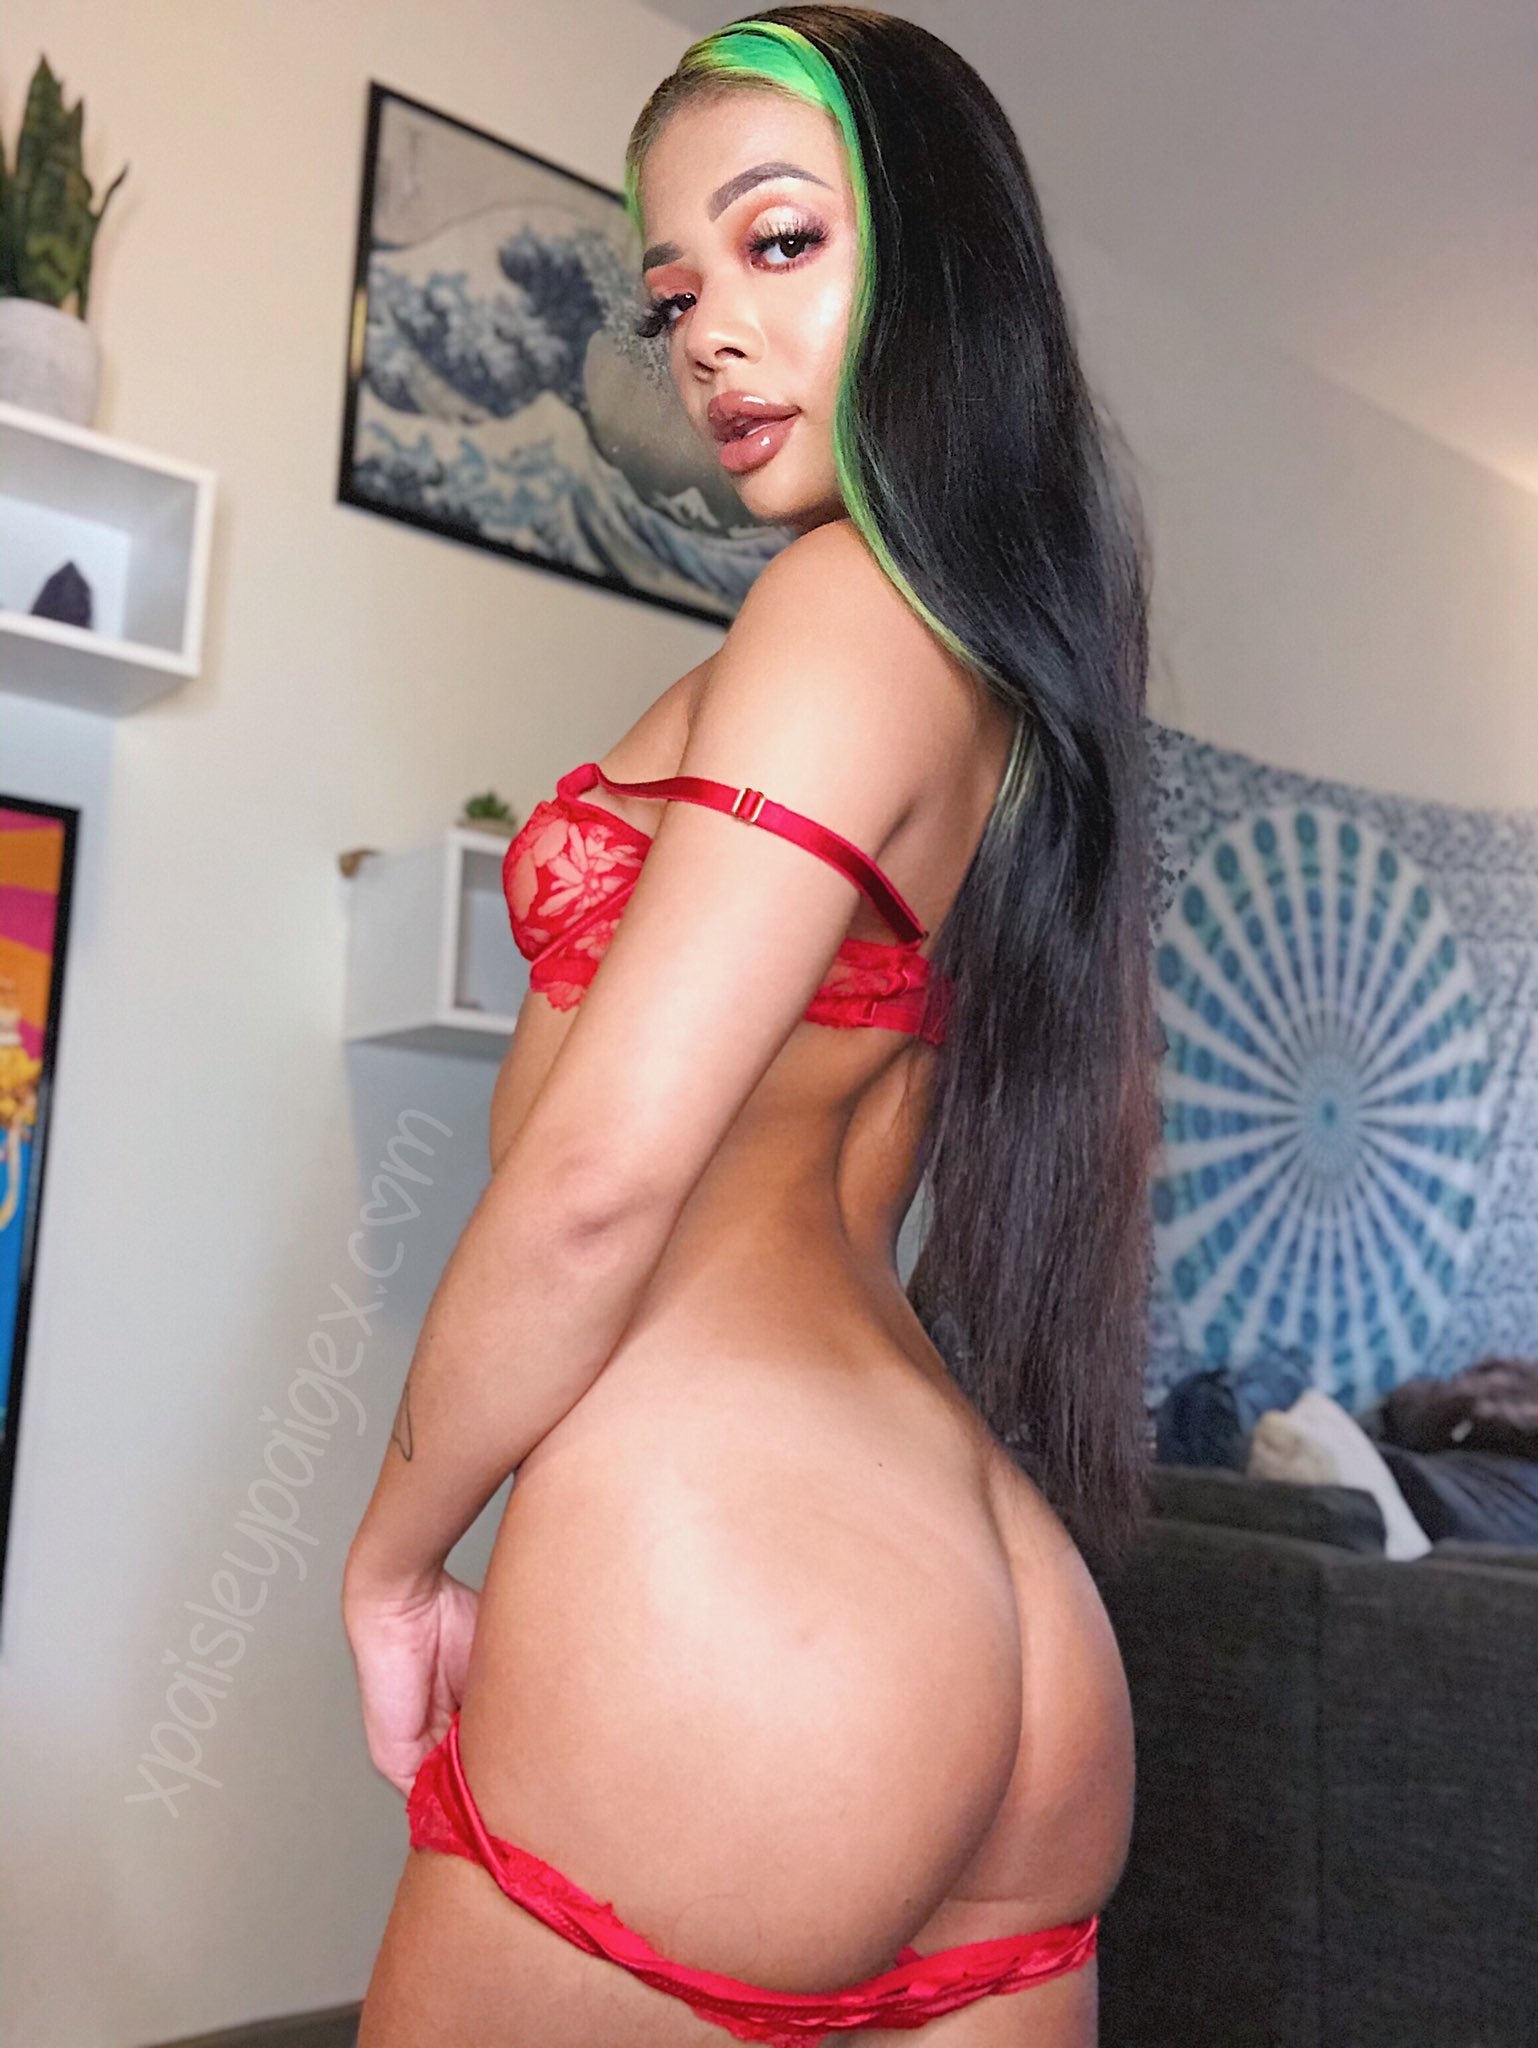 paisley paige, shows off nice booty, booty, asian woman, asian booty, ass, cute asian babe